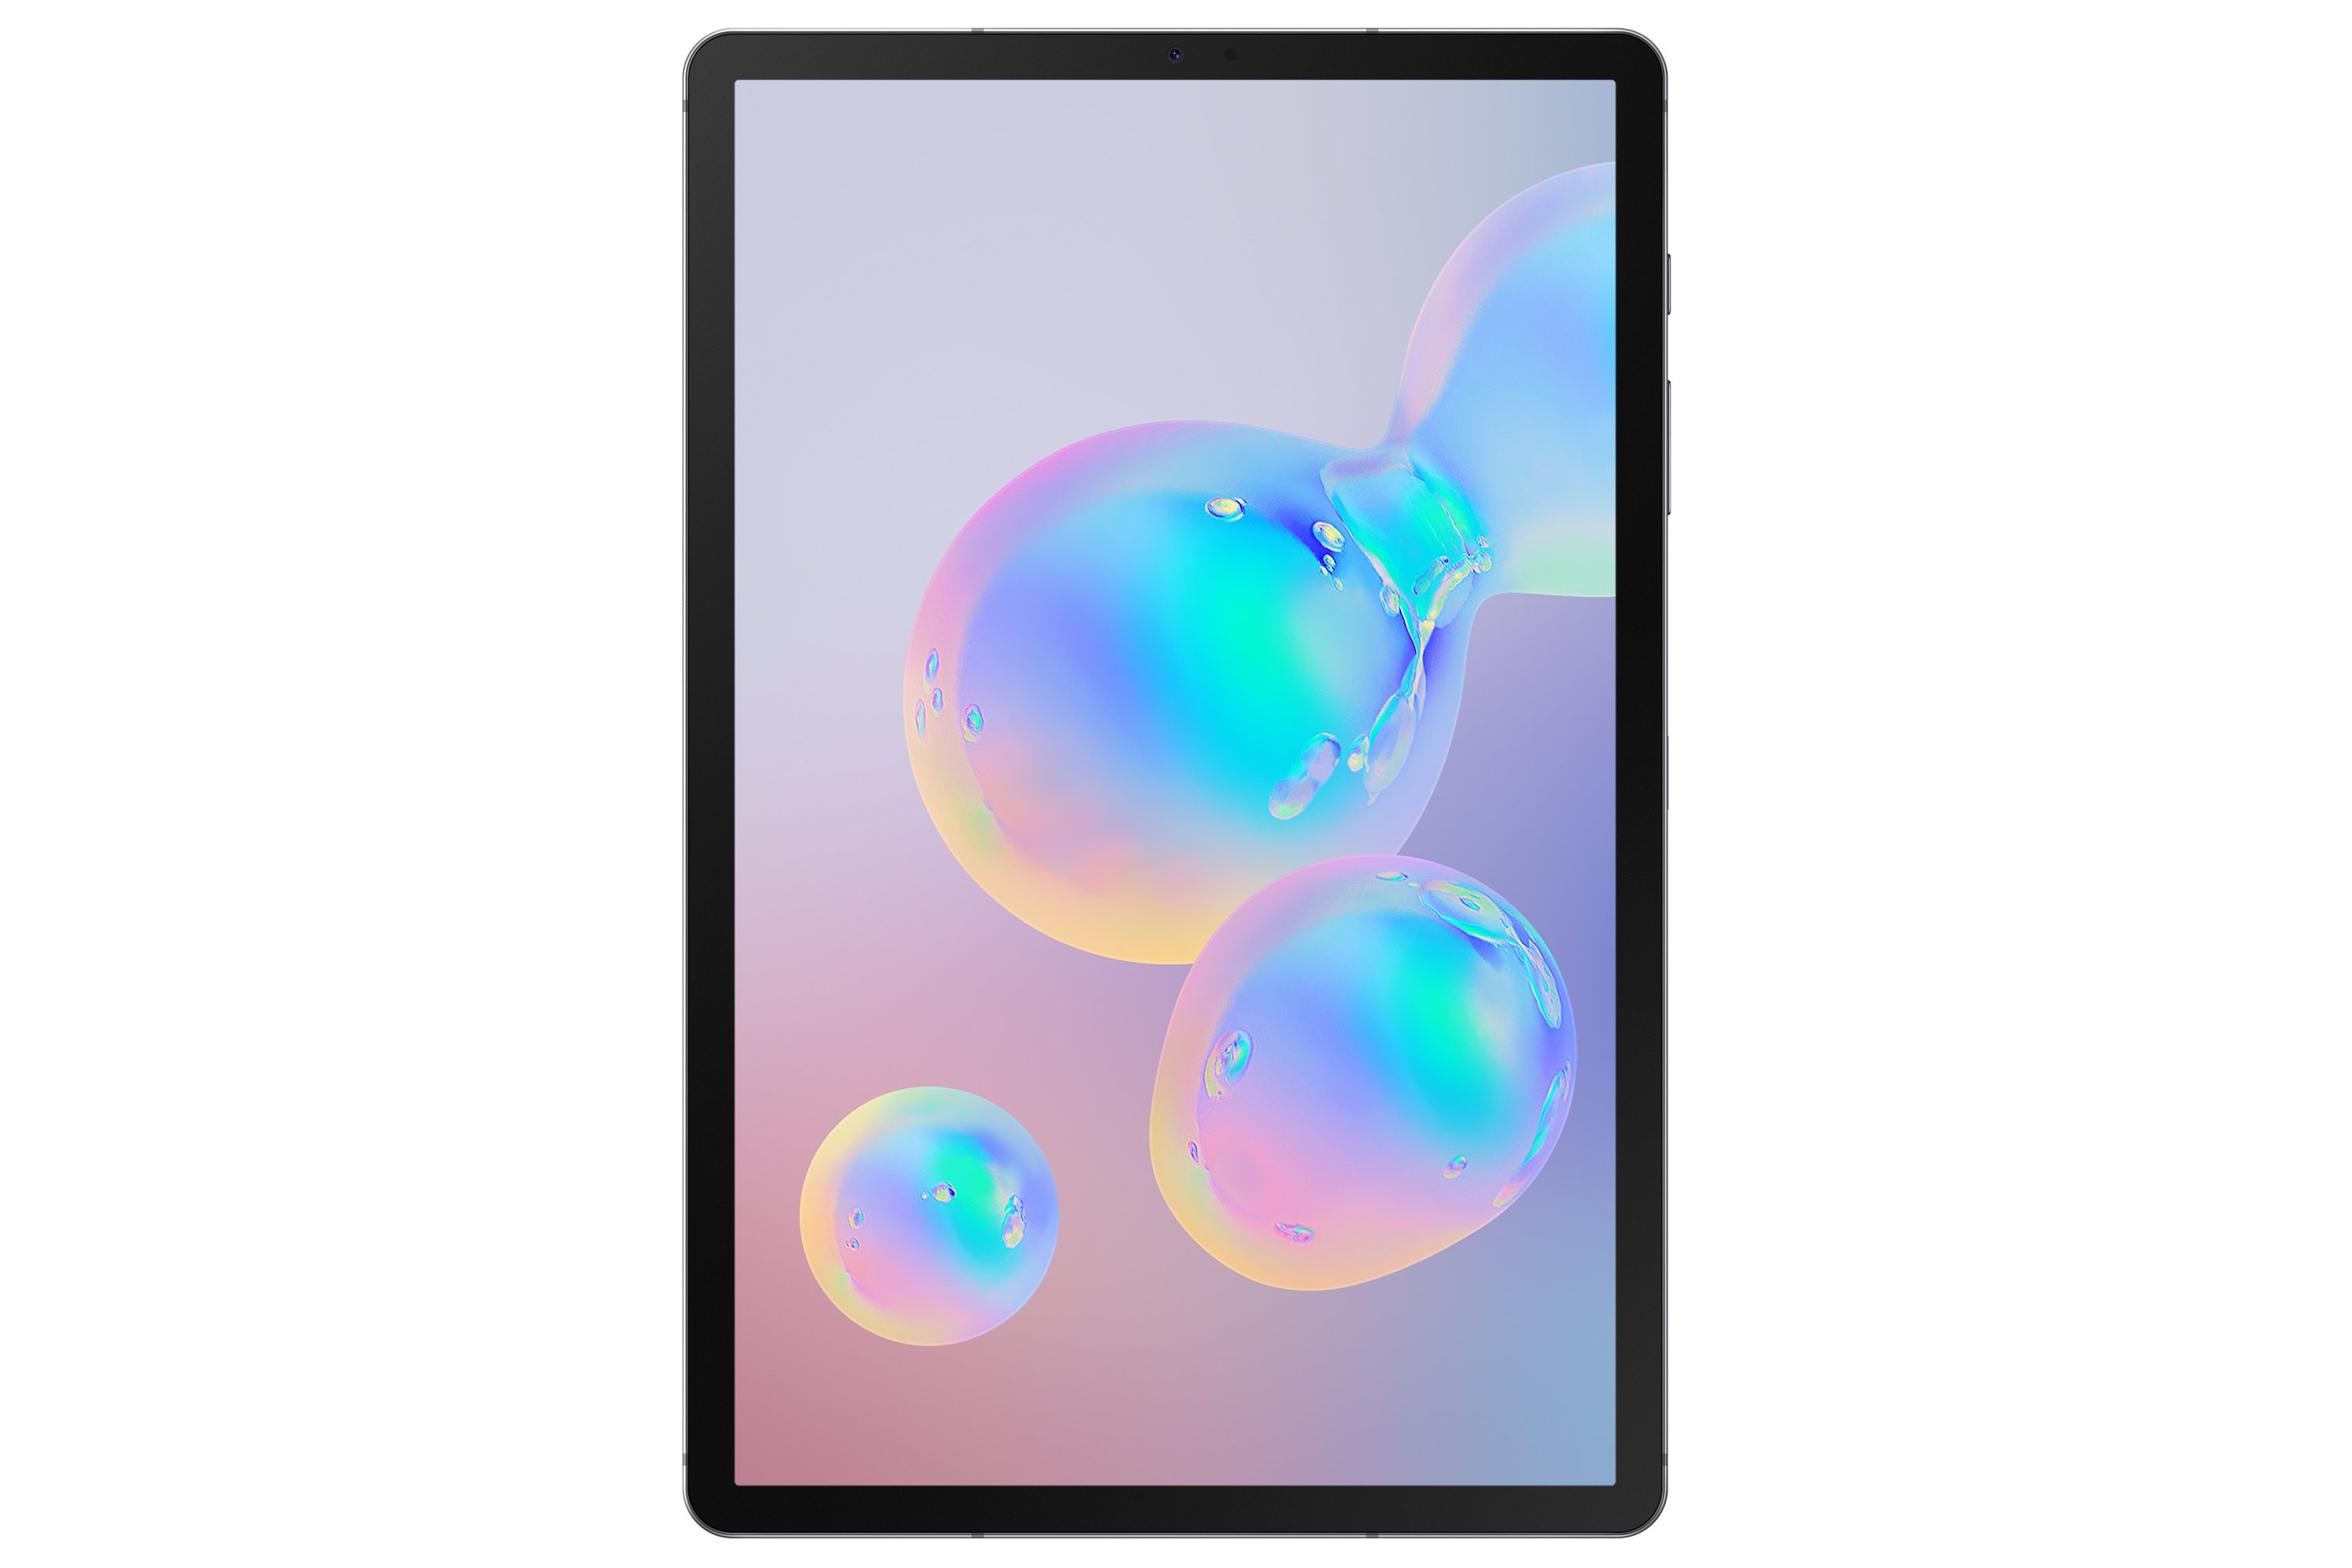 Samsung Galaxy Tab S6 - Surfplatta - Android 9.0 (Pie) - 128 GB